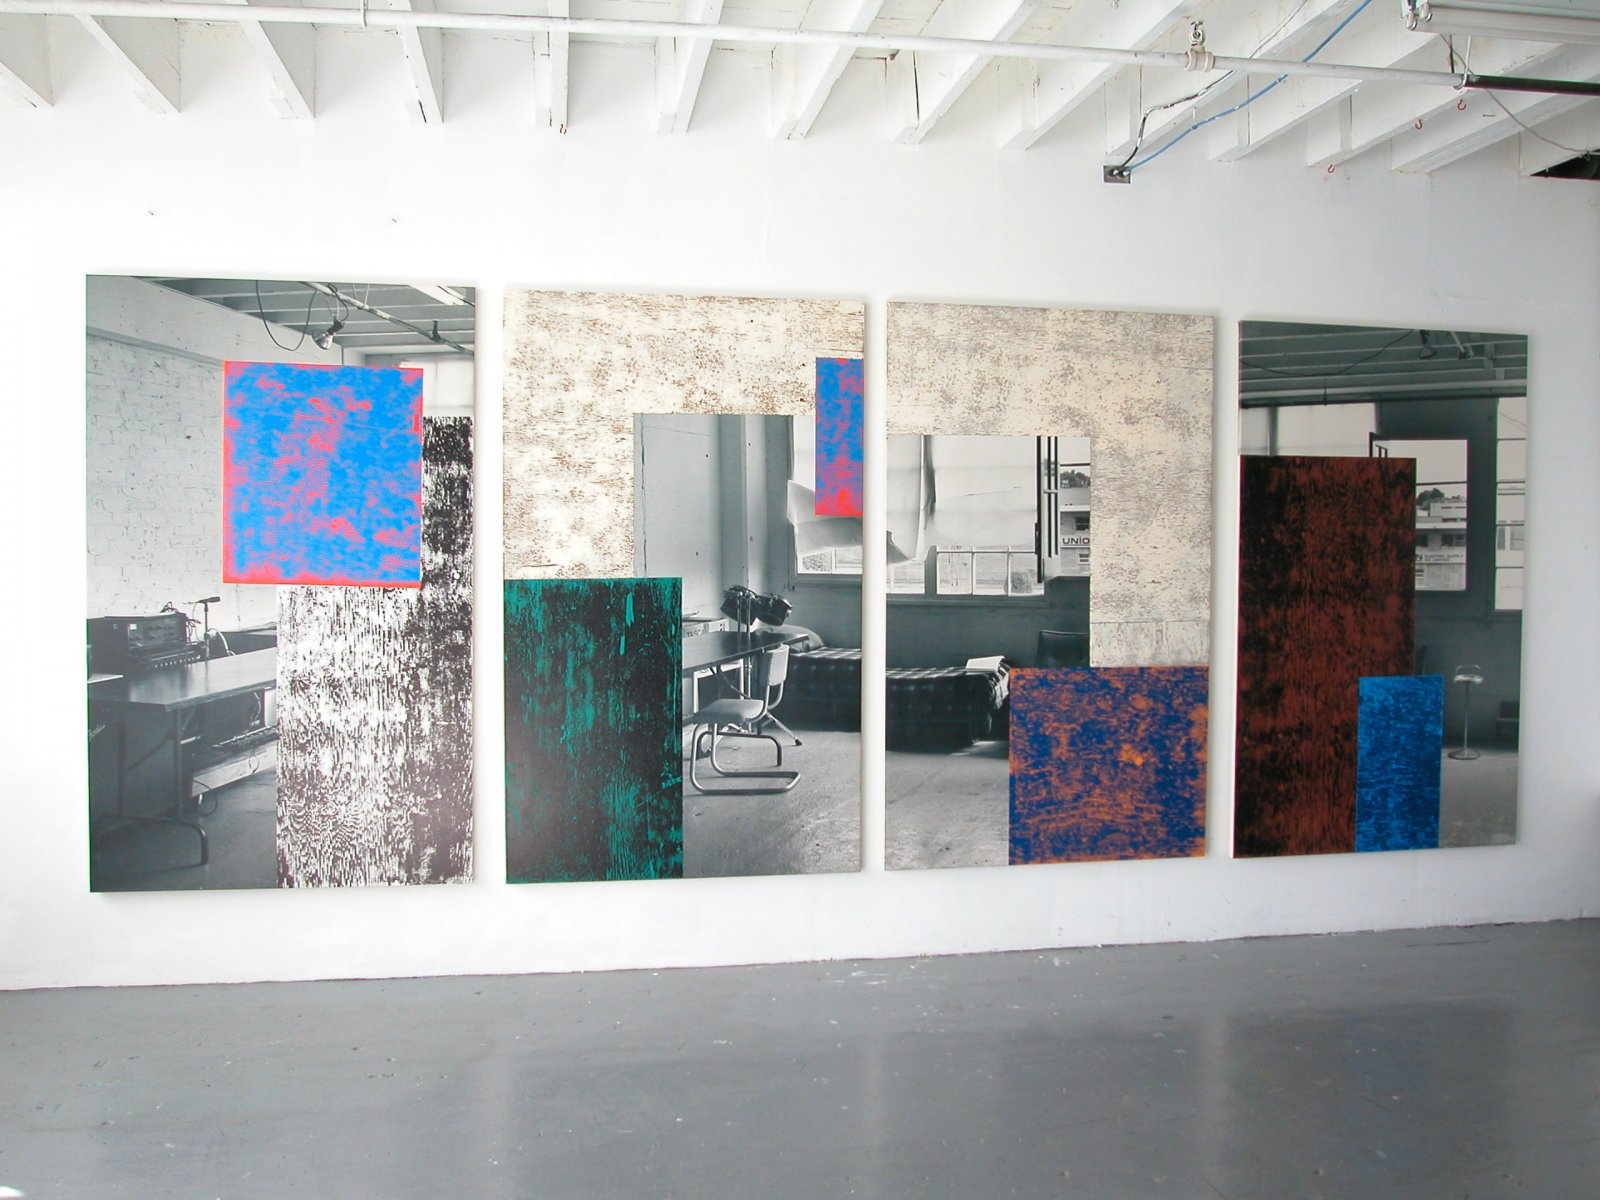 Ian Wallace,Corner of the Studio I–IV, 1993,ink monoprint with photolaminate and acrylic on canvas,each 78 x 78 in. (198 x 198 cm)